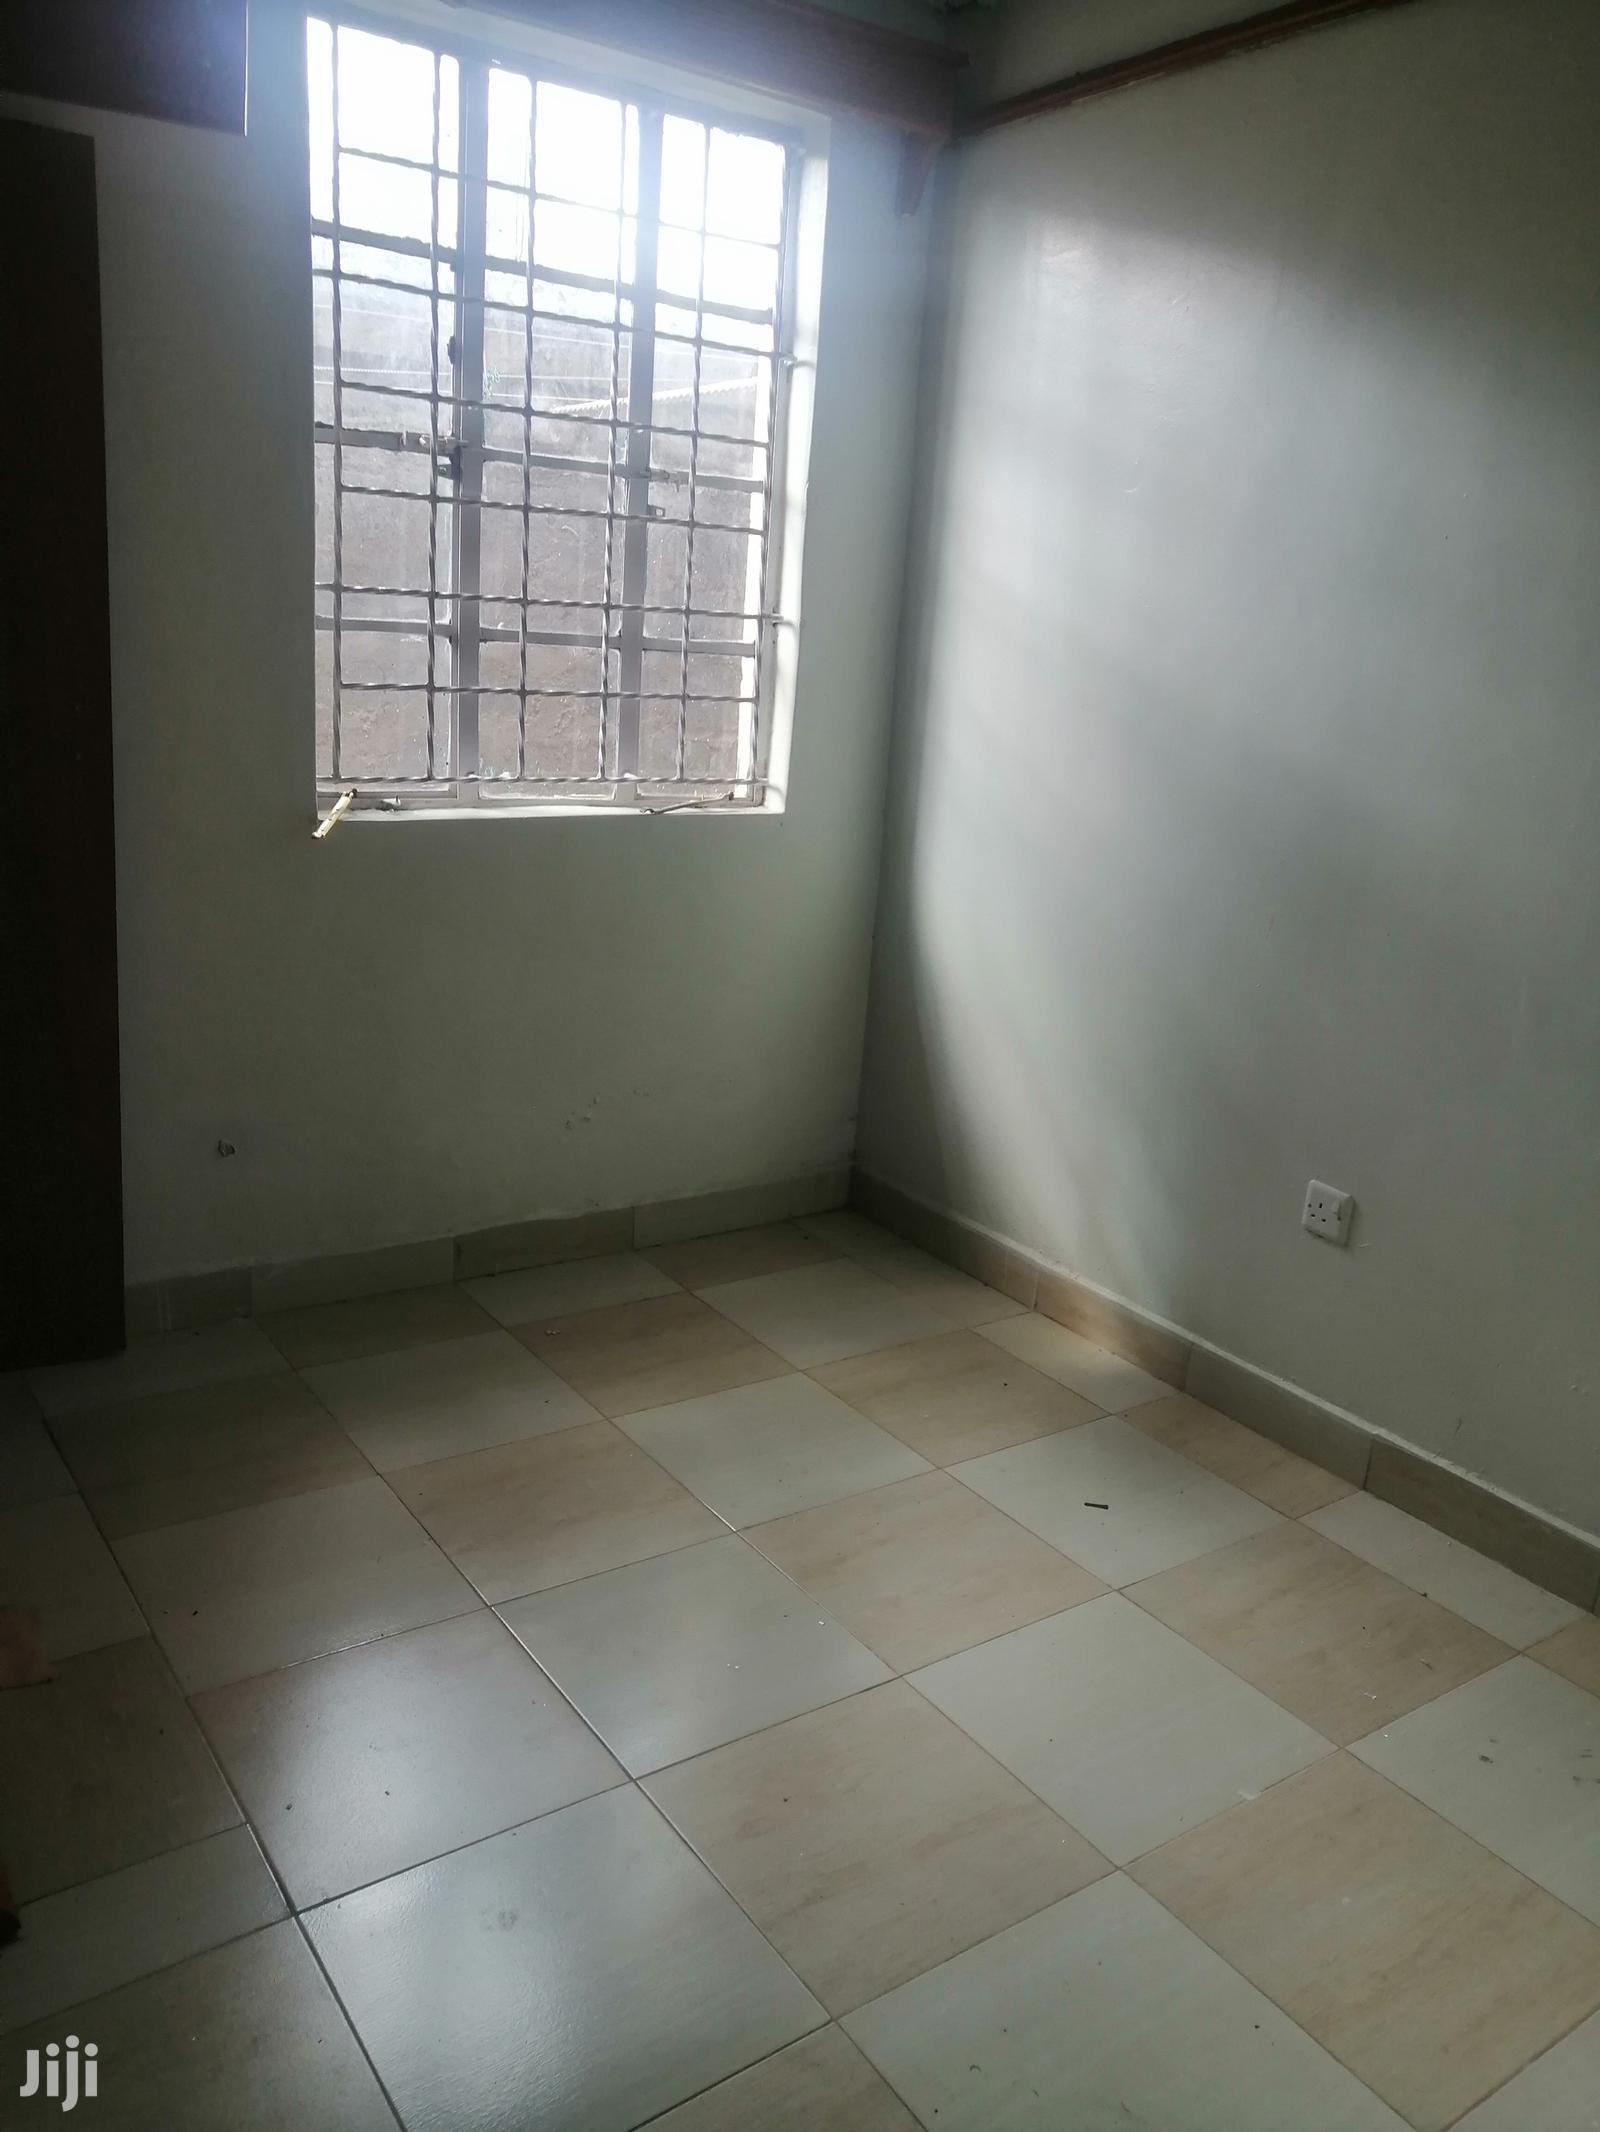 Archive: SPACIOUS 2 Bedroom Apartment for Rent Ongata Rongai